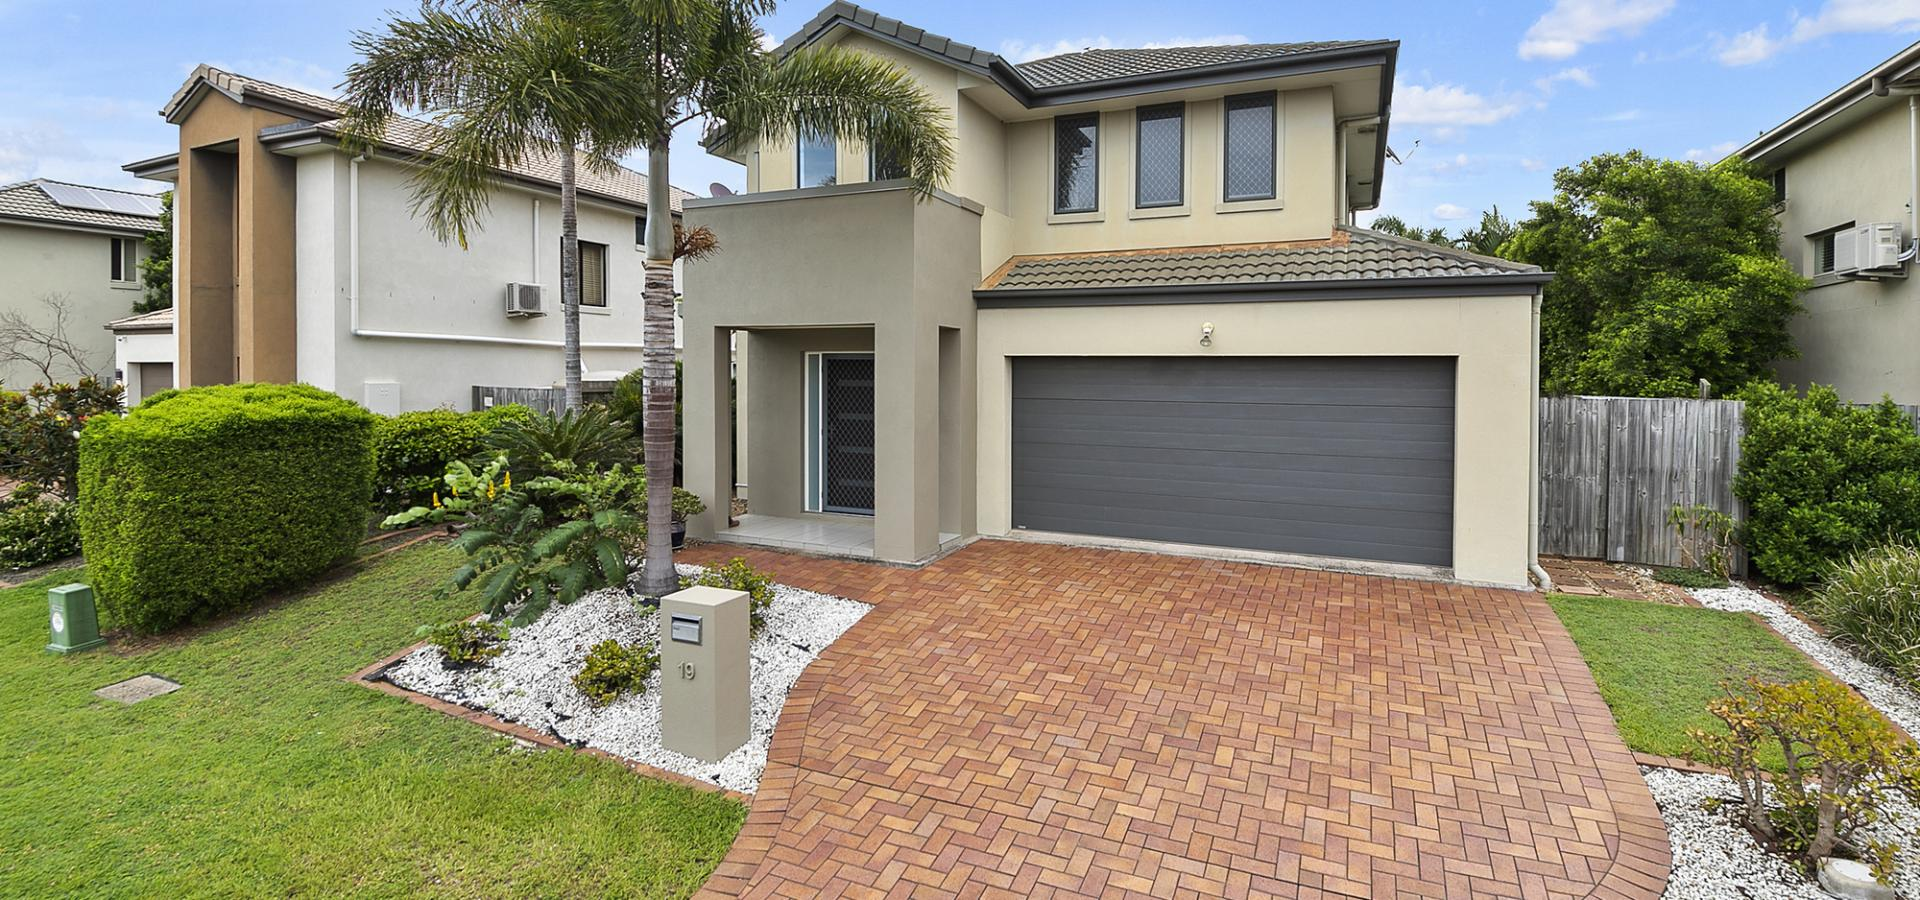 Fantastic family home in the Belmont State School Catchment